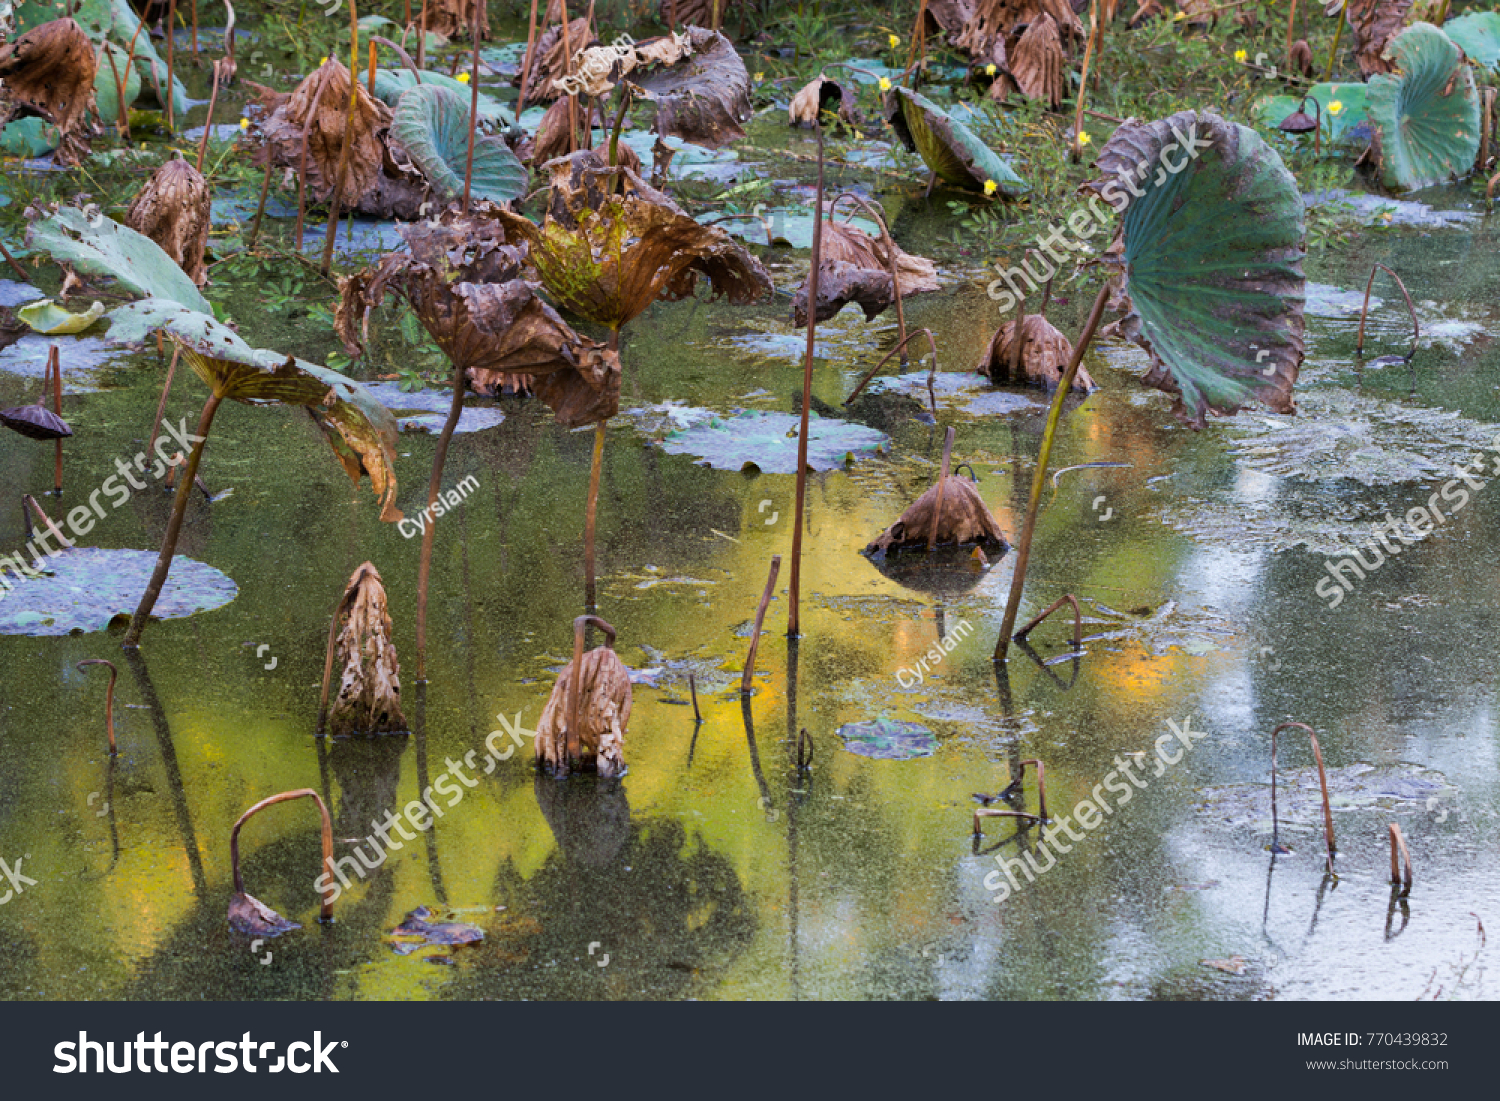 Waterlily pond dry dead water lilies stock photo edit now waterlily pond dry and dead water lilies dead lotus flower beautiful colored background izmirmasajfo